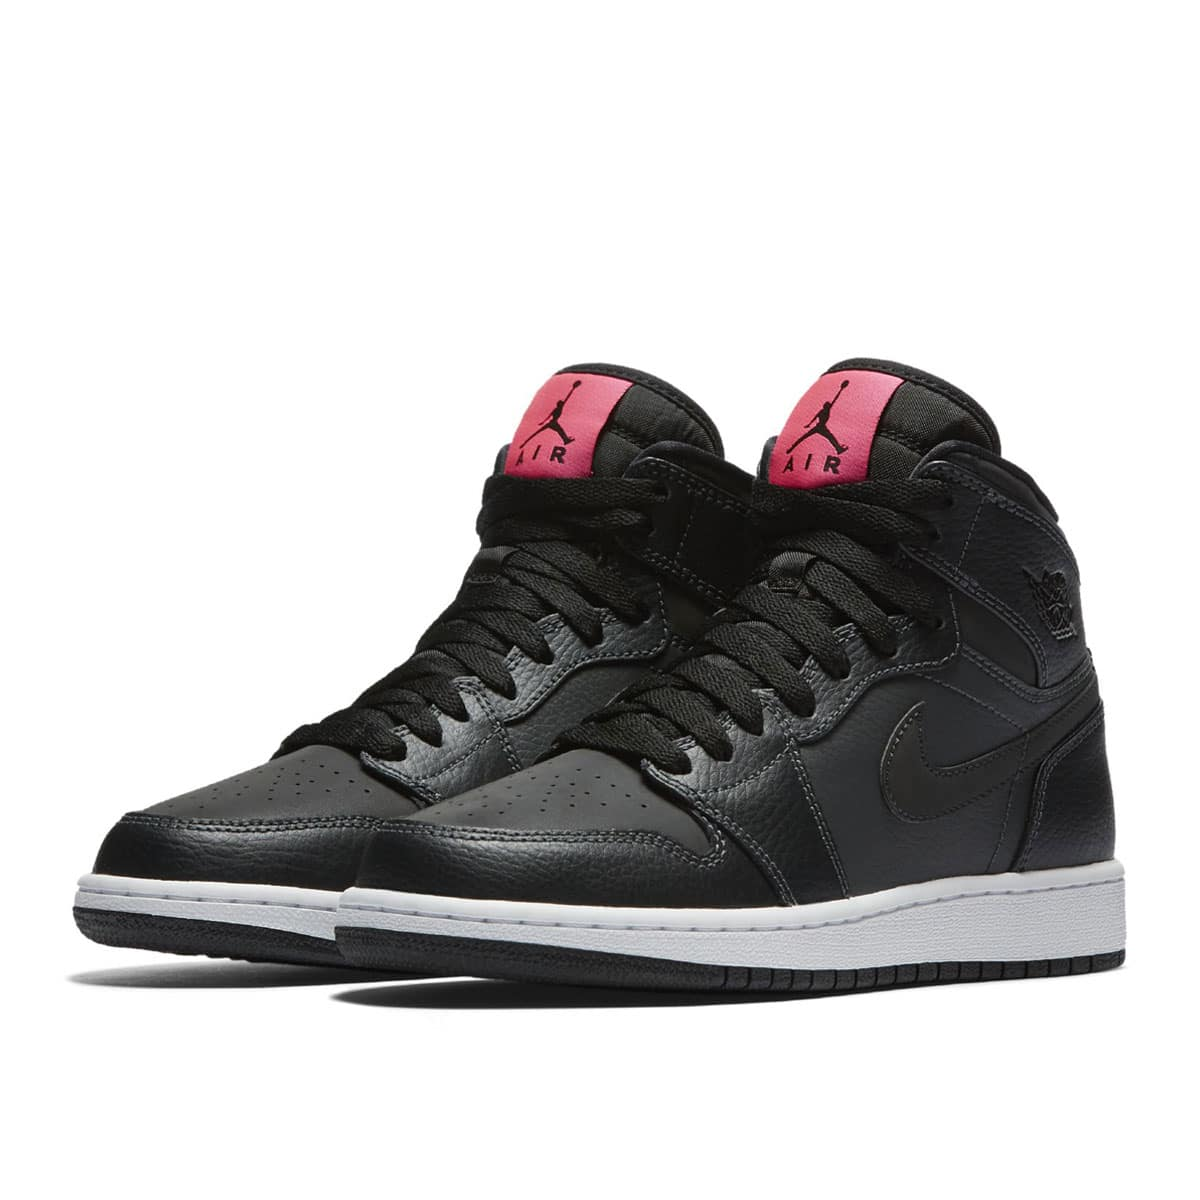 cheap for discount 20a83 3b6e8 NIKE AIR JORDAN 1 RETRO HIGH GG ANTHRACITE/BLACK-BLACK-HYPER ...